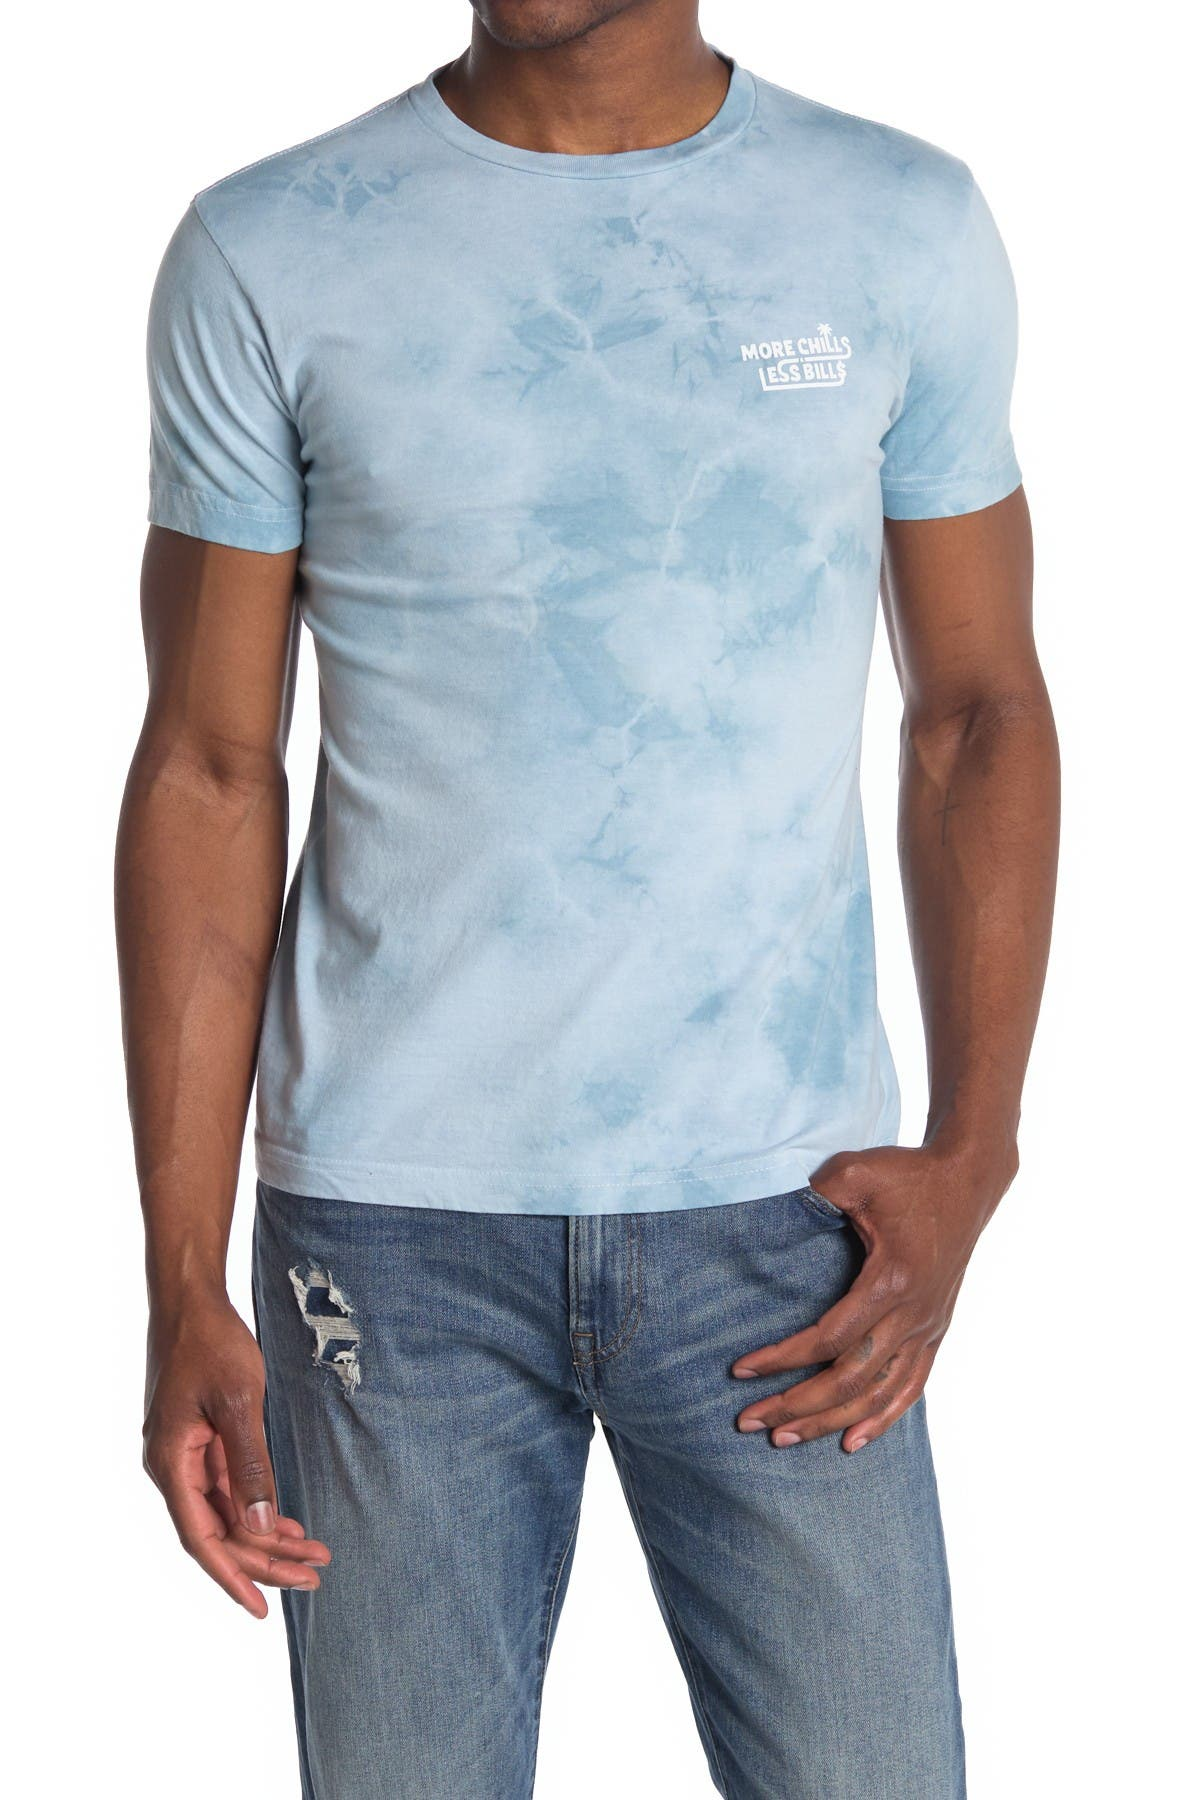 Image of Barney Cools More Chills Less Bills Tie-Dye T-Shirt